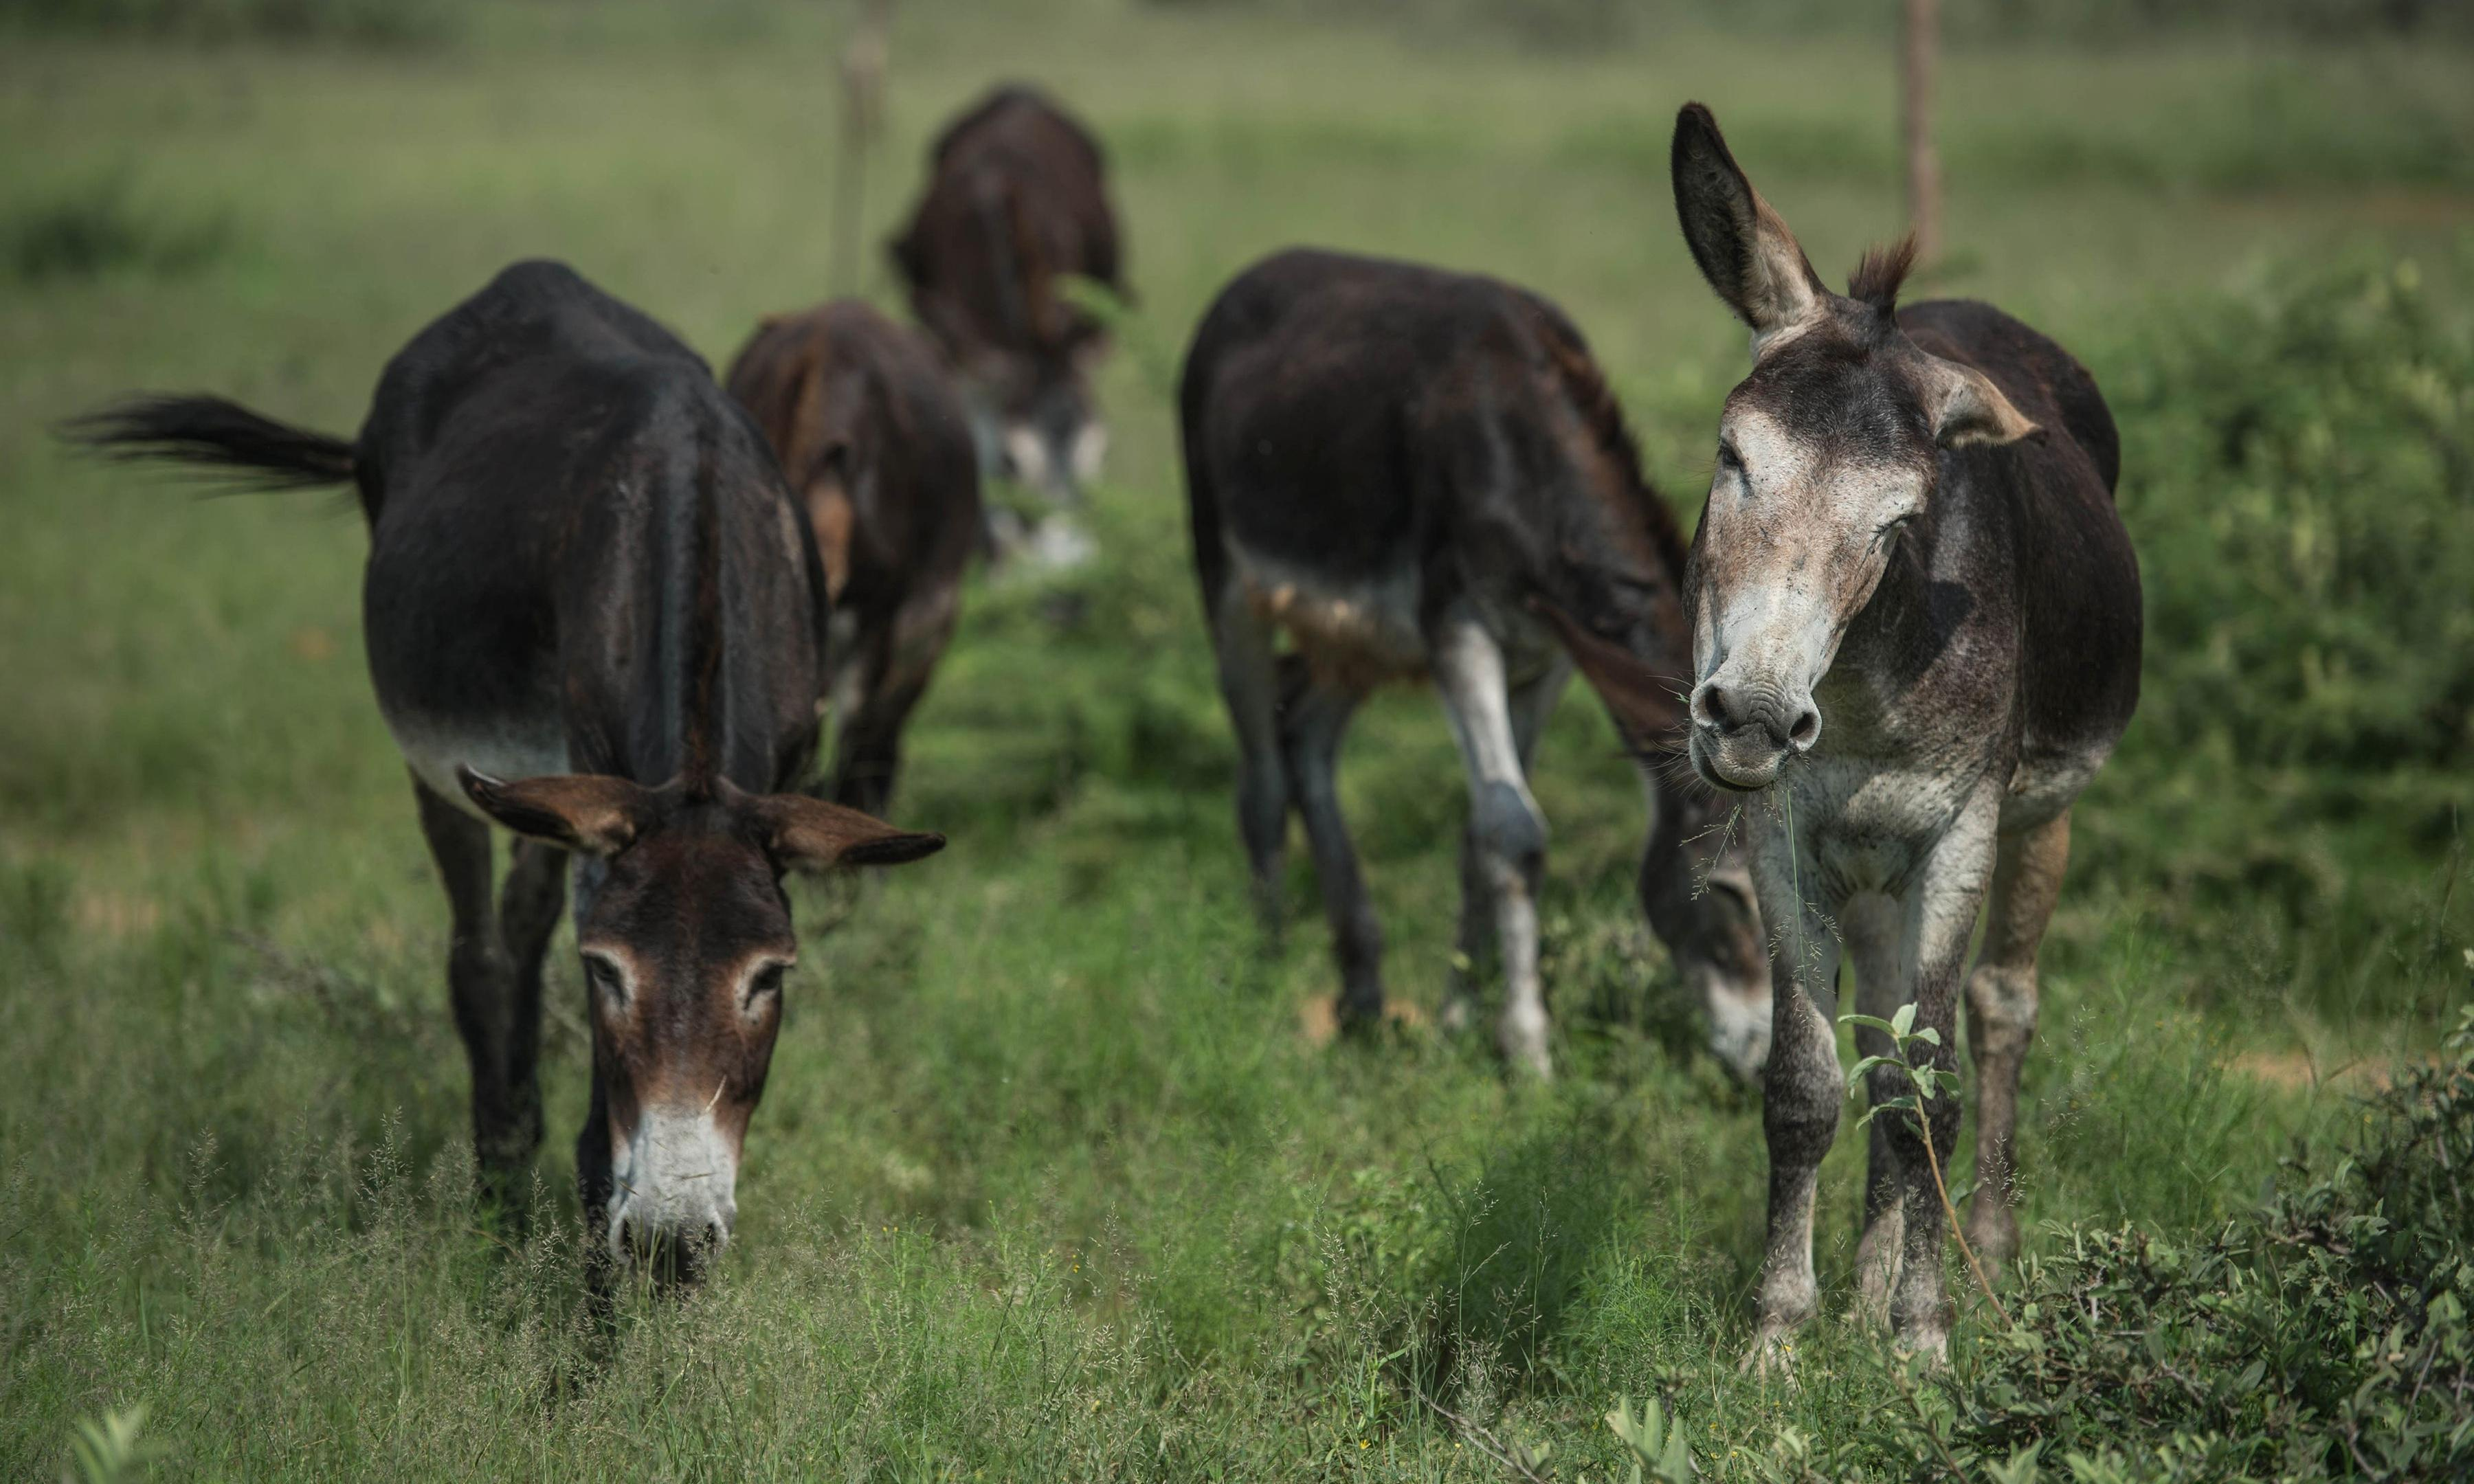 World's donkeys being 'decimated' by demand for Chinese medicine